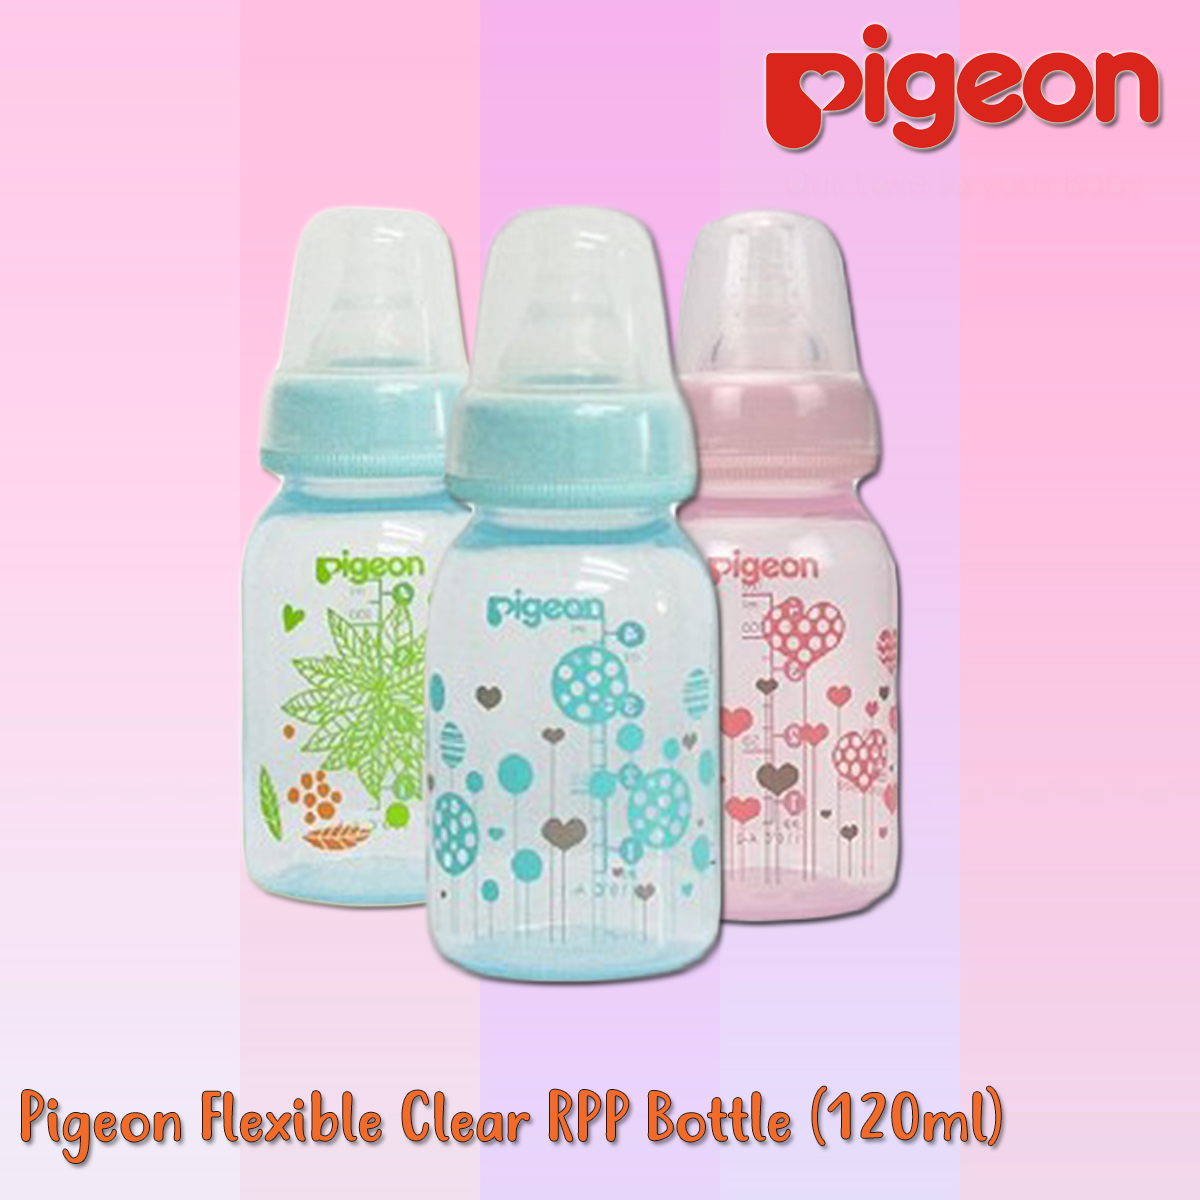 Pigeon Flexible Clear RPP Bottle (120ml).jpg